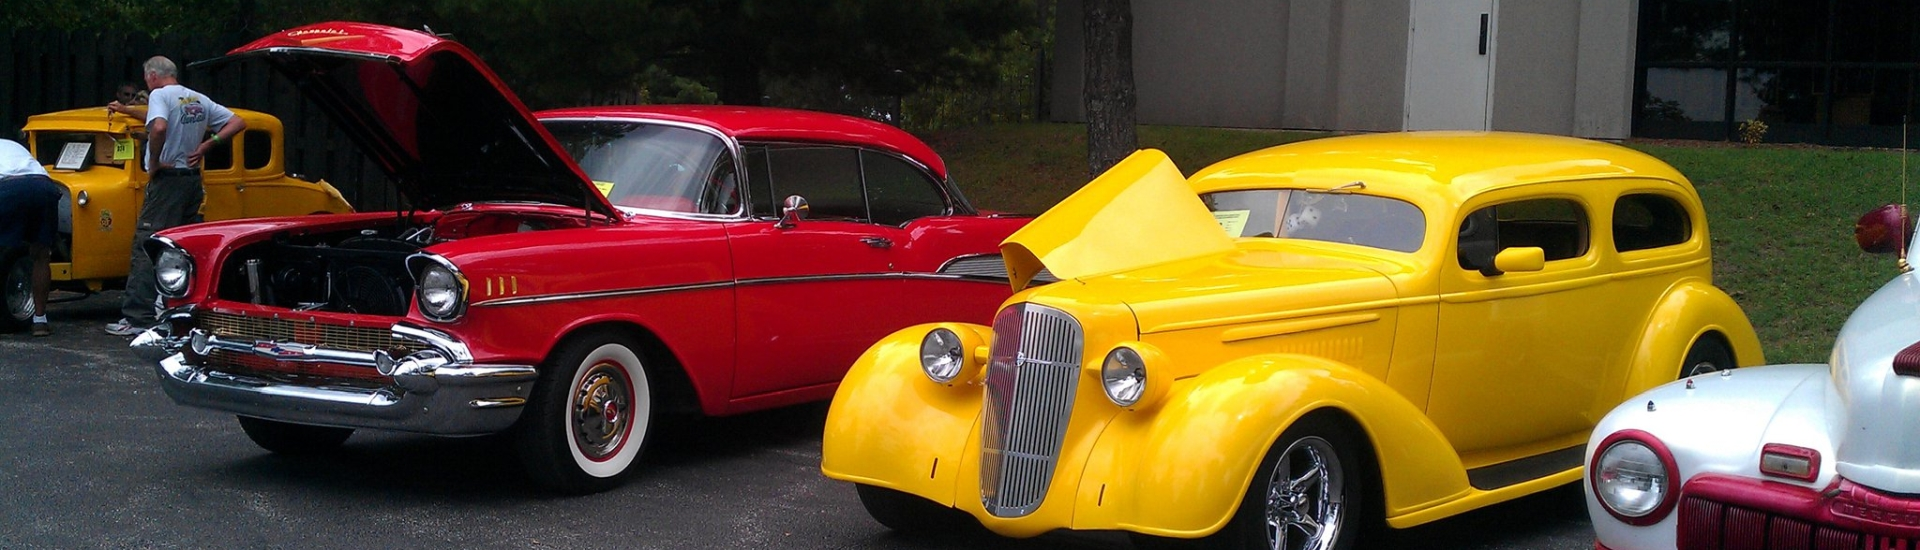 Branson S Summer Car Cruise Show Continues In 2017 Travel Office